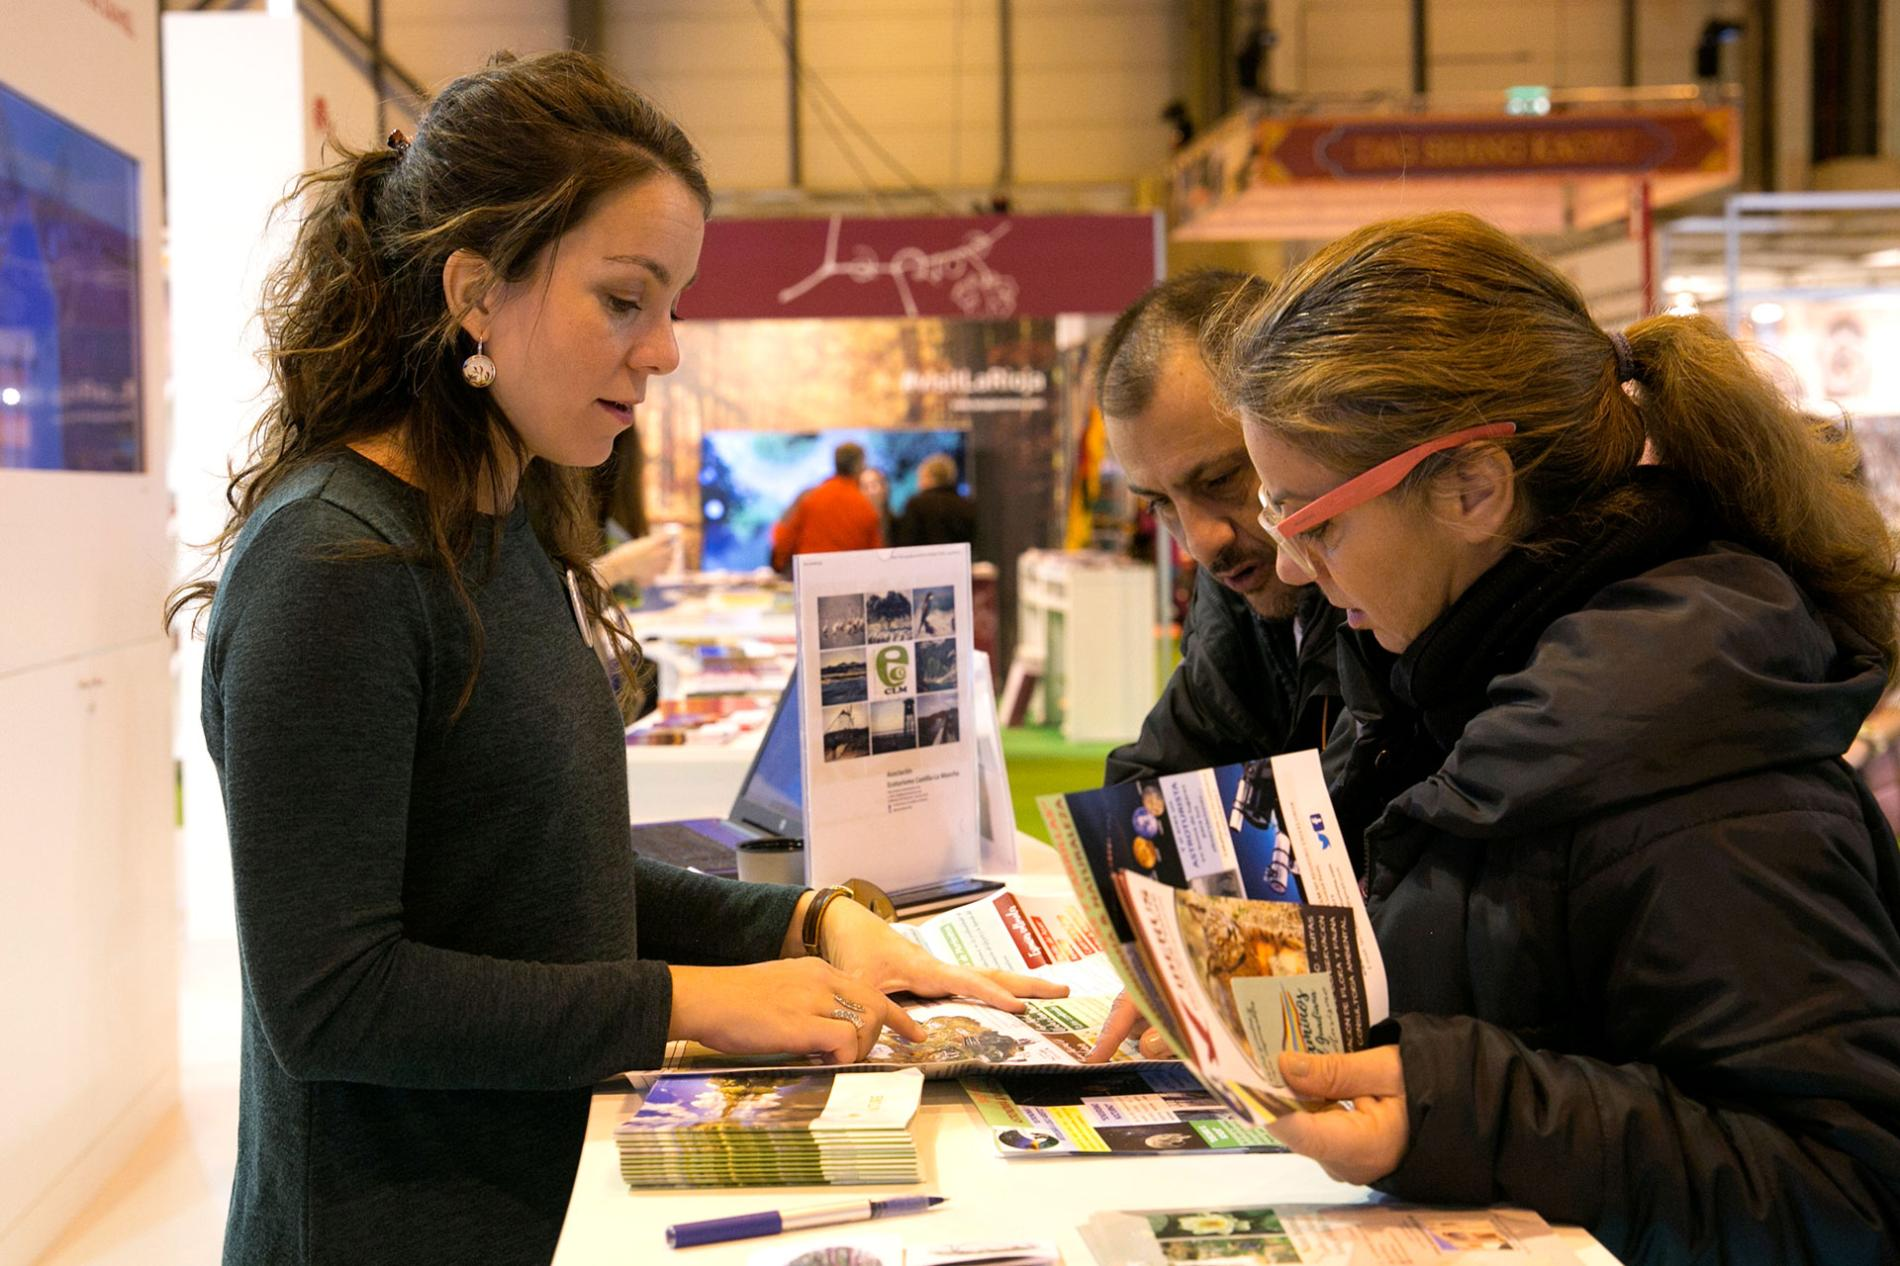 Visitors in the exhibitors area